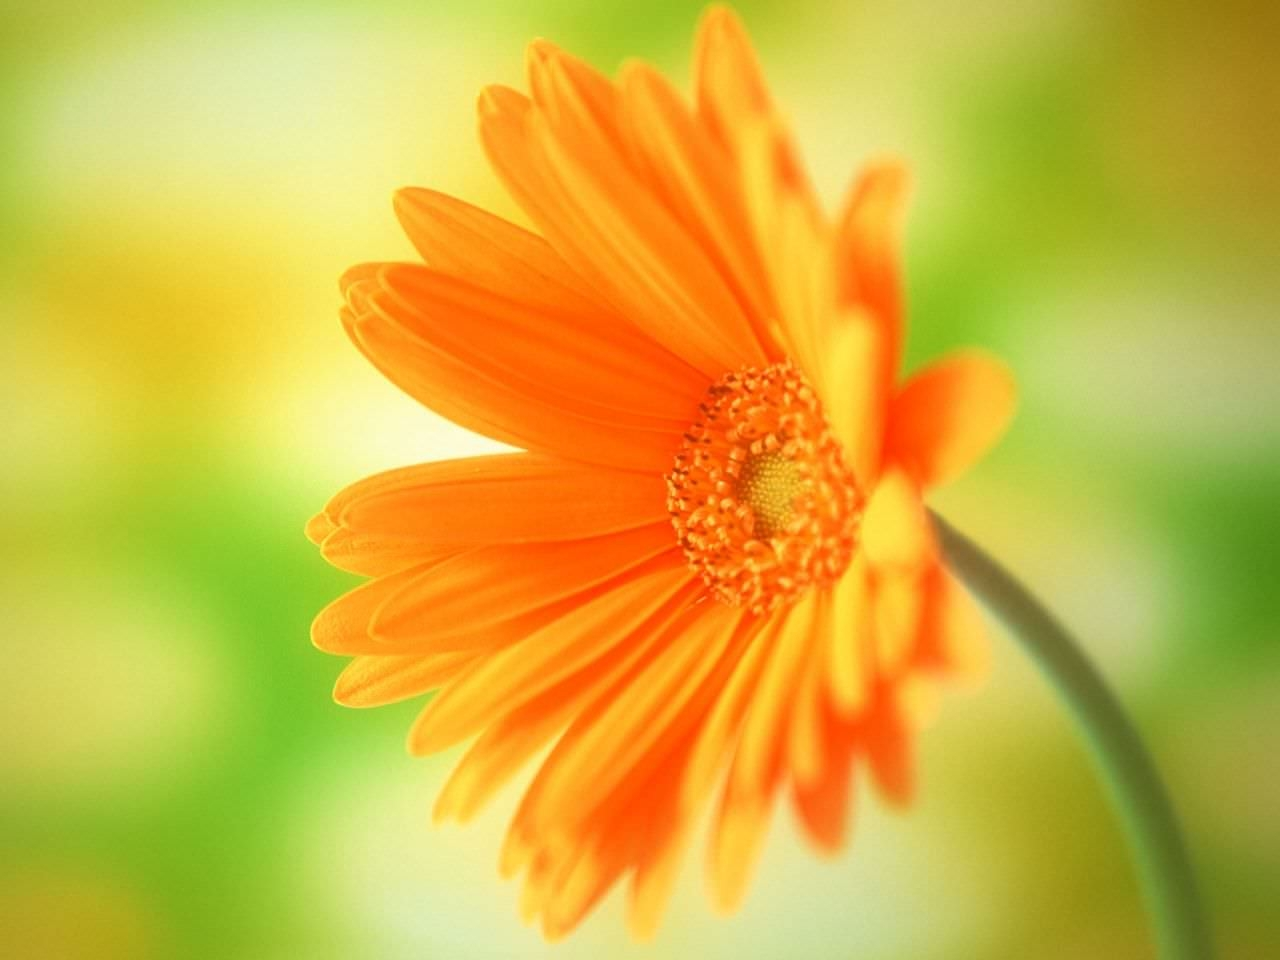 amazing flowers background 1600x1200 - photo #27